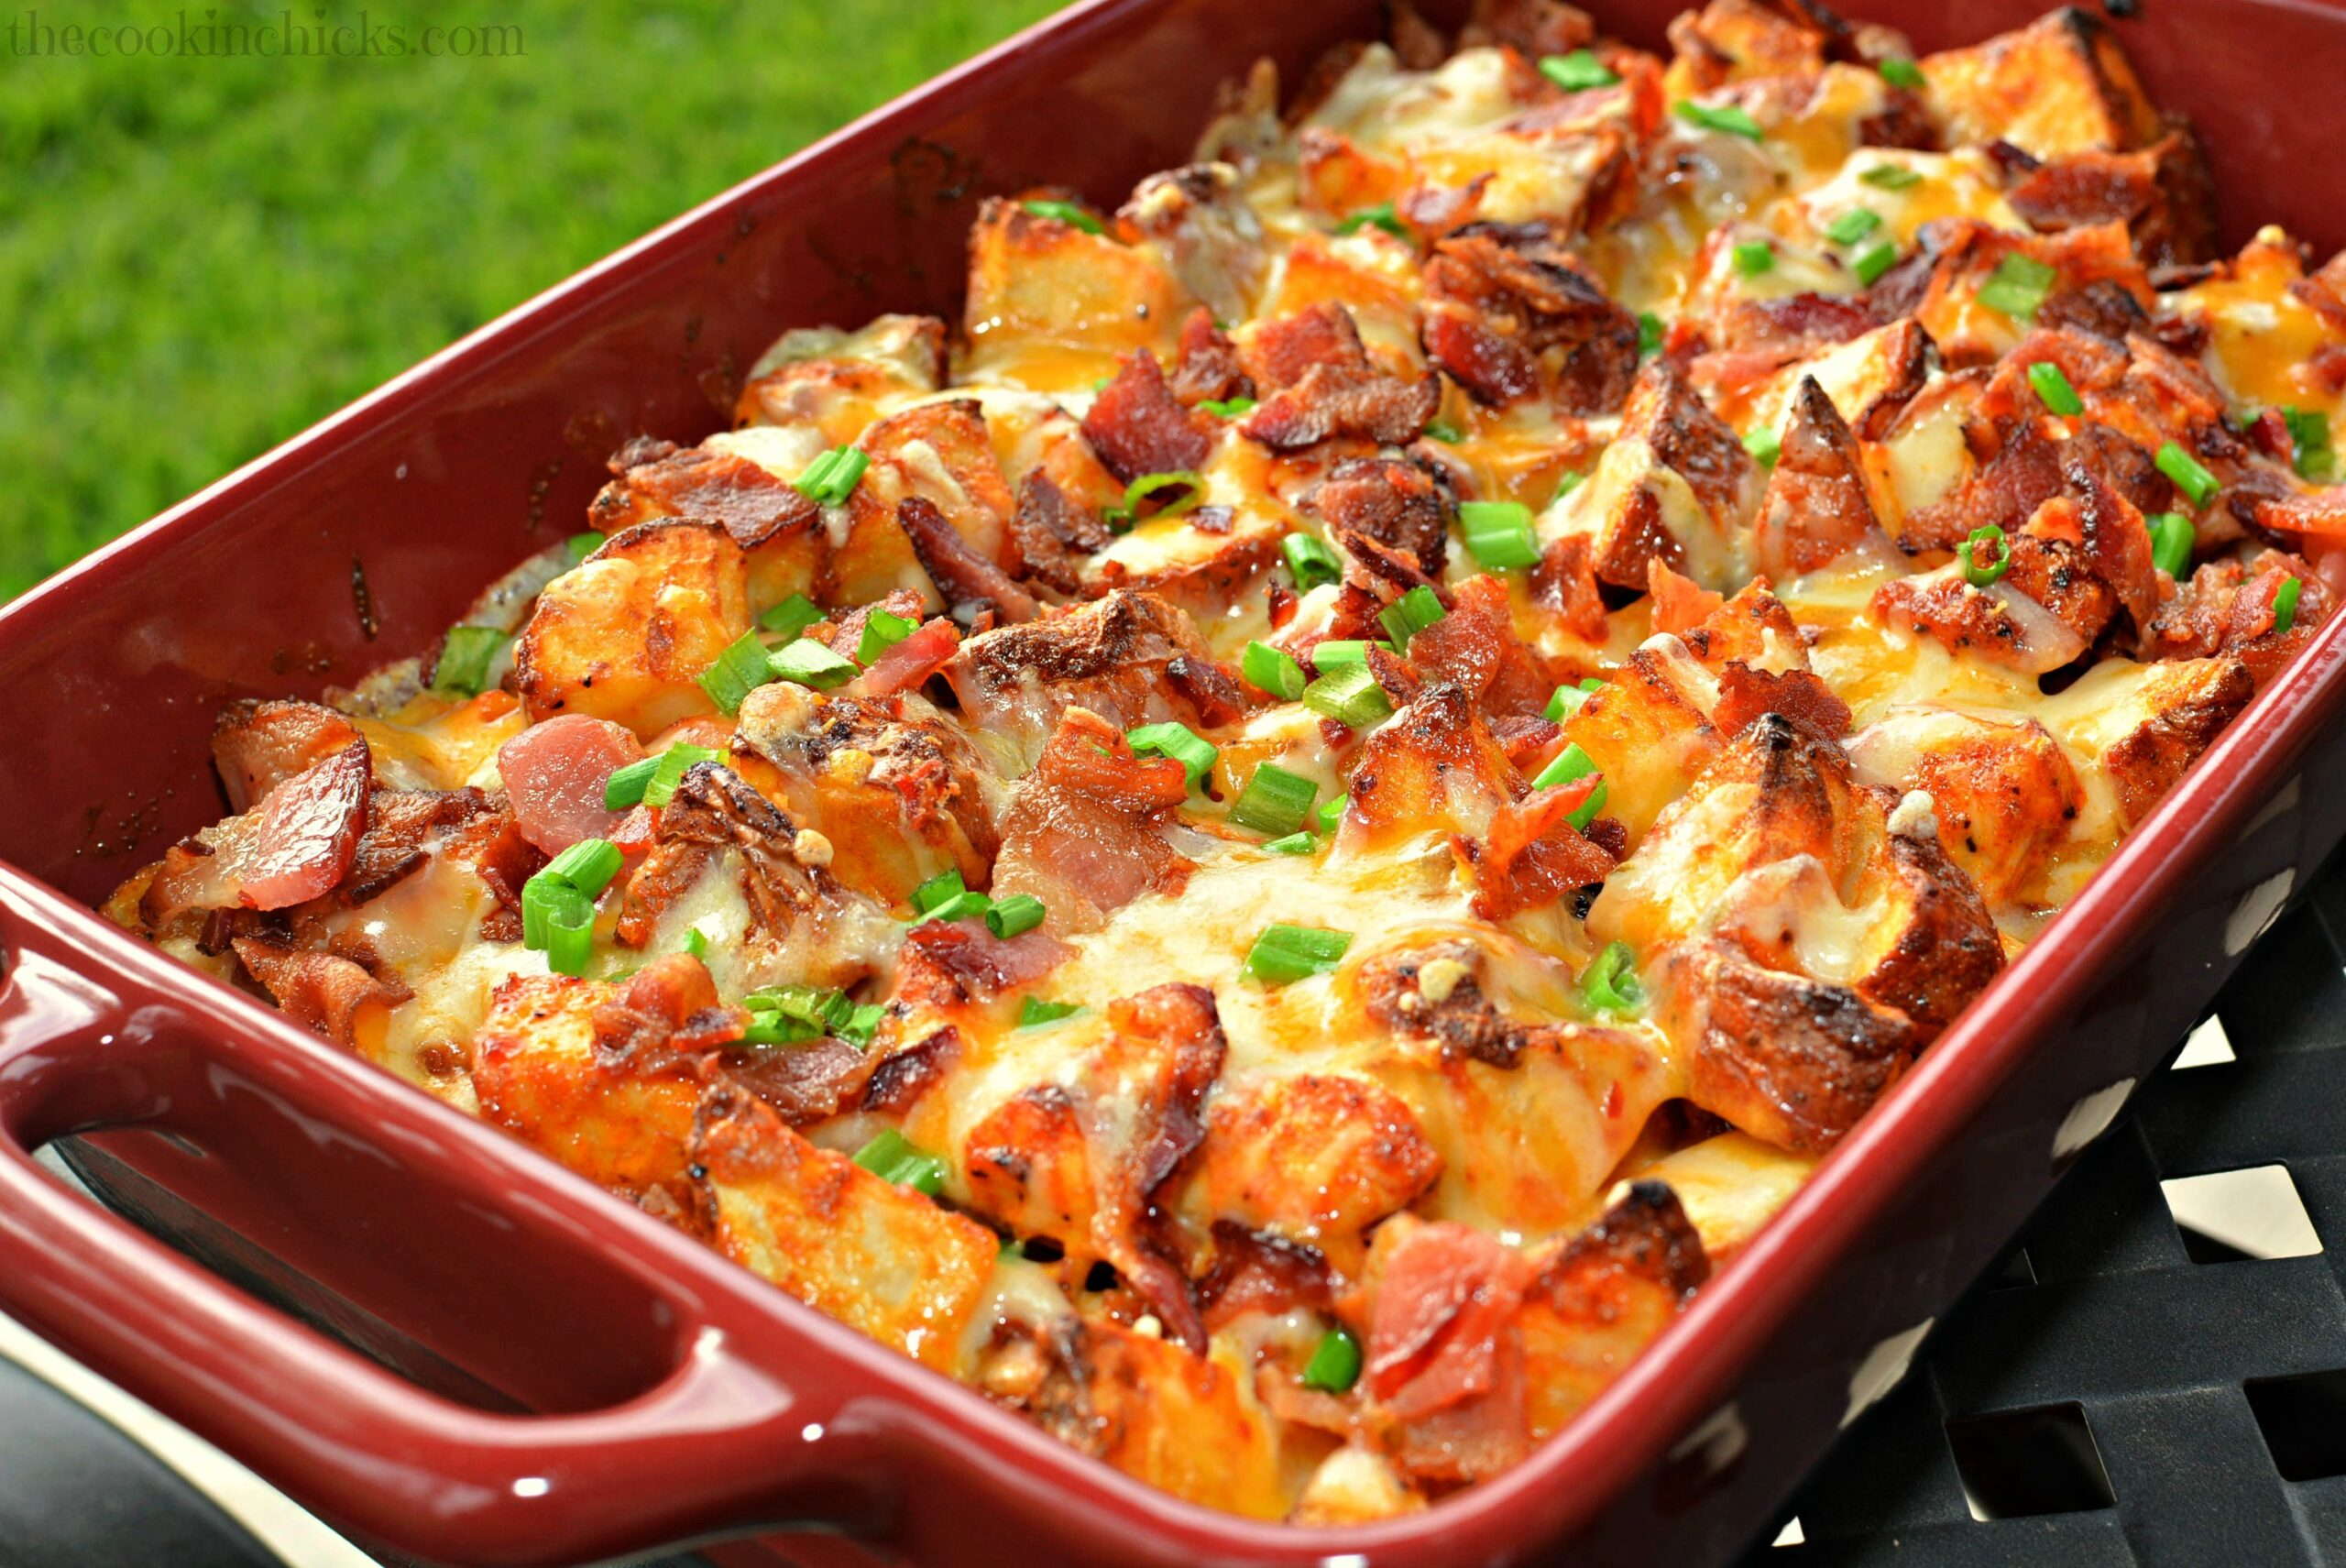 Loaded Chicken & Potato Casserole | The Cookin Chicks